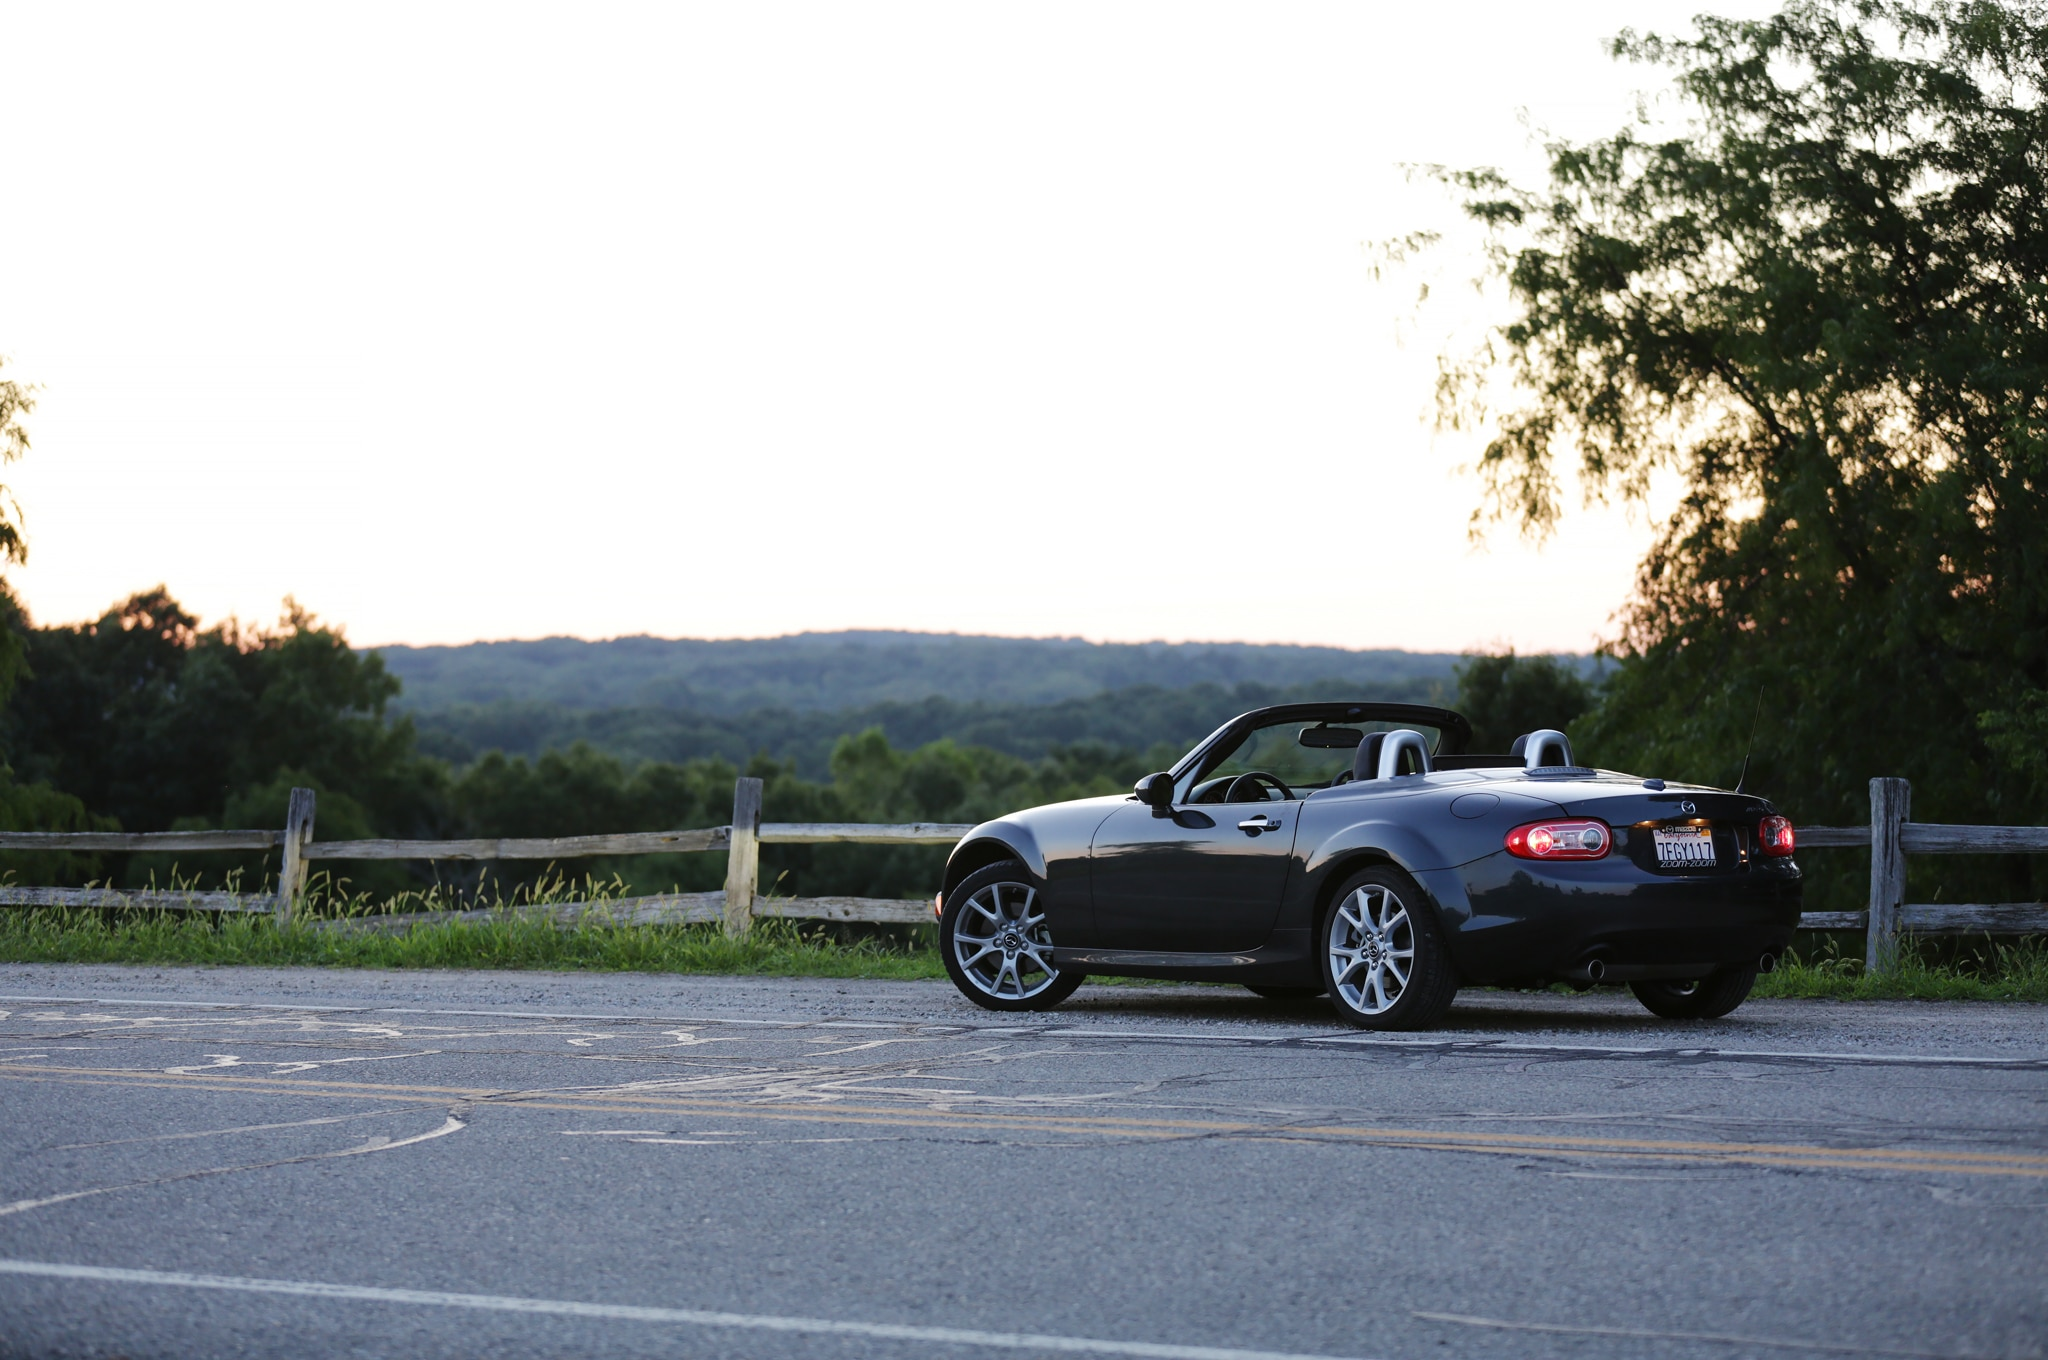 2014 Mazda MX 5 Miata Grand Touring PRHT rear three quarters 03 2014 mazda mx 5 miata grand touring prht introduction 2008 Mazda Miata Trim Packages at suagrazia.org